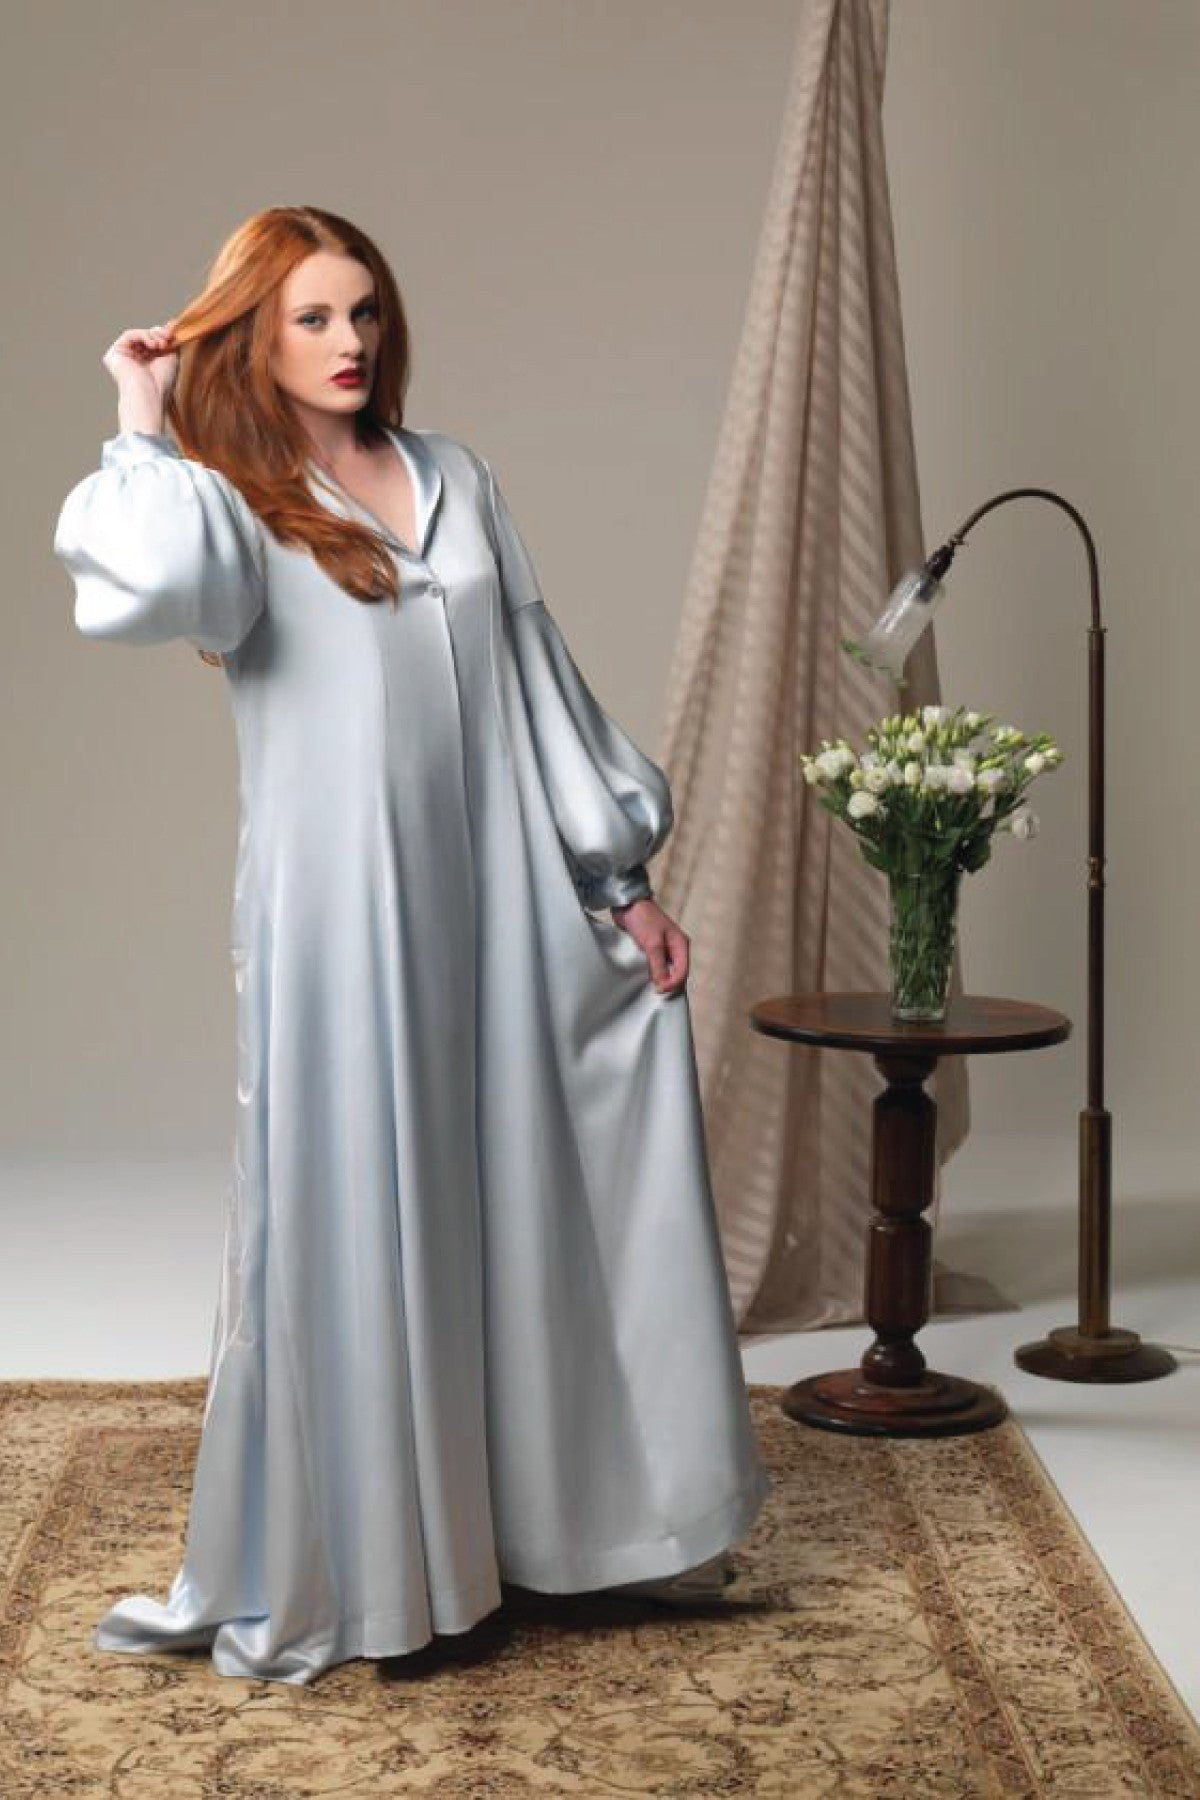 Fortuna Opulence Robe - Sleepwear - The Fashion Advocate - Ethical Australian fashion online like - Melbourne fashion blogger